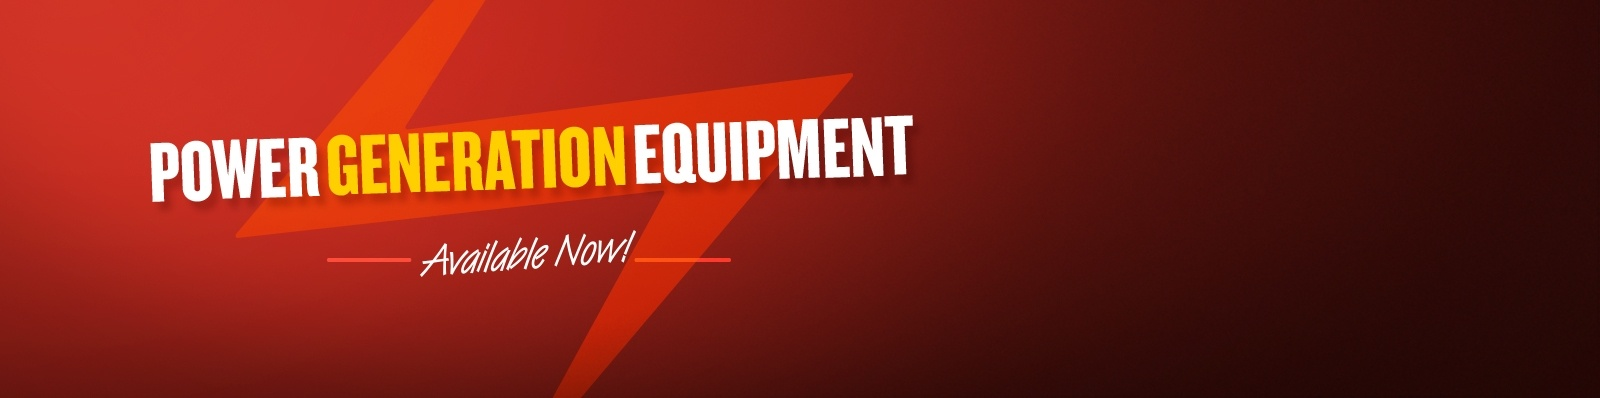 Check out our new specialist equipment